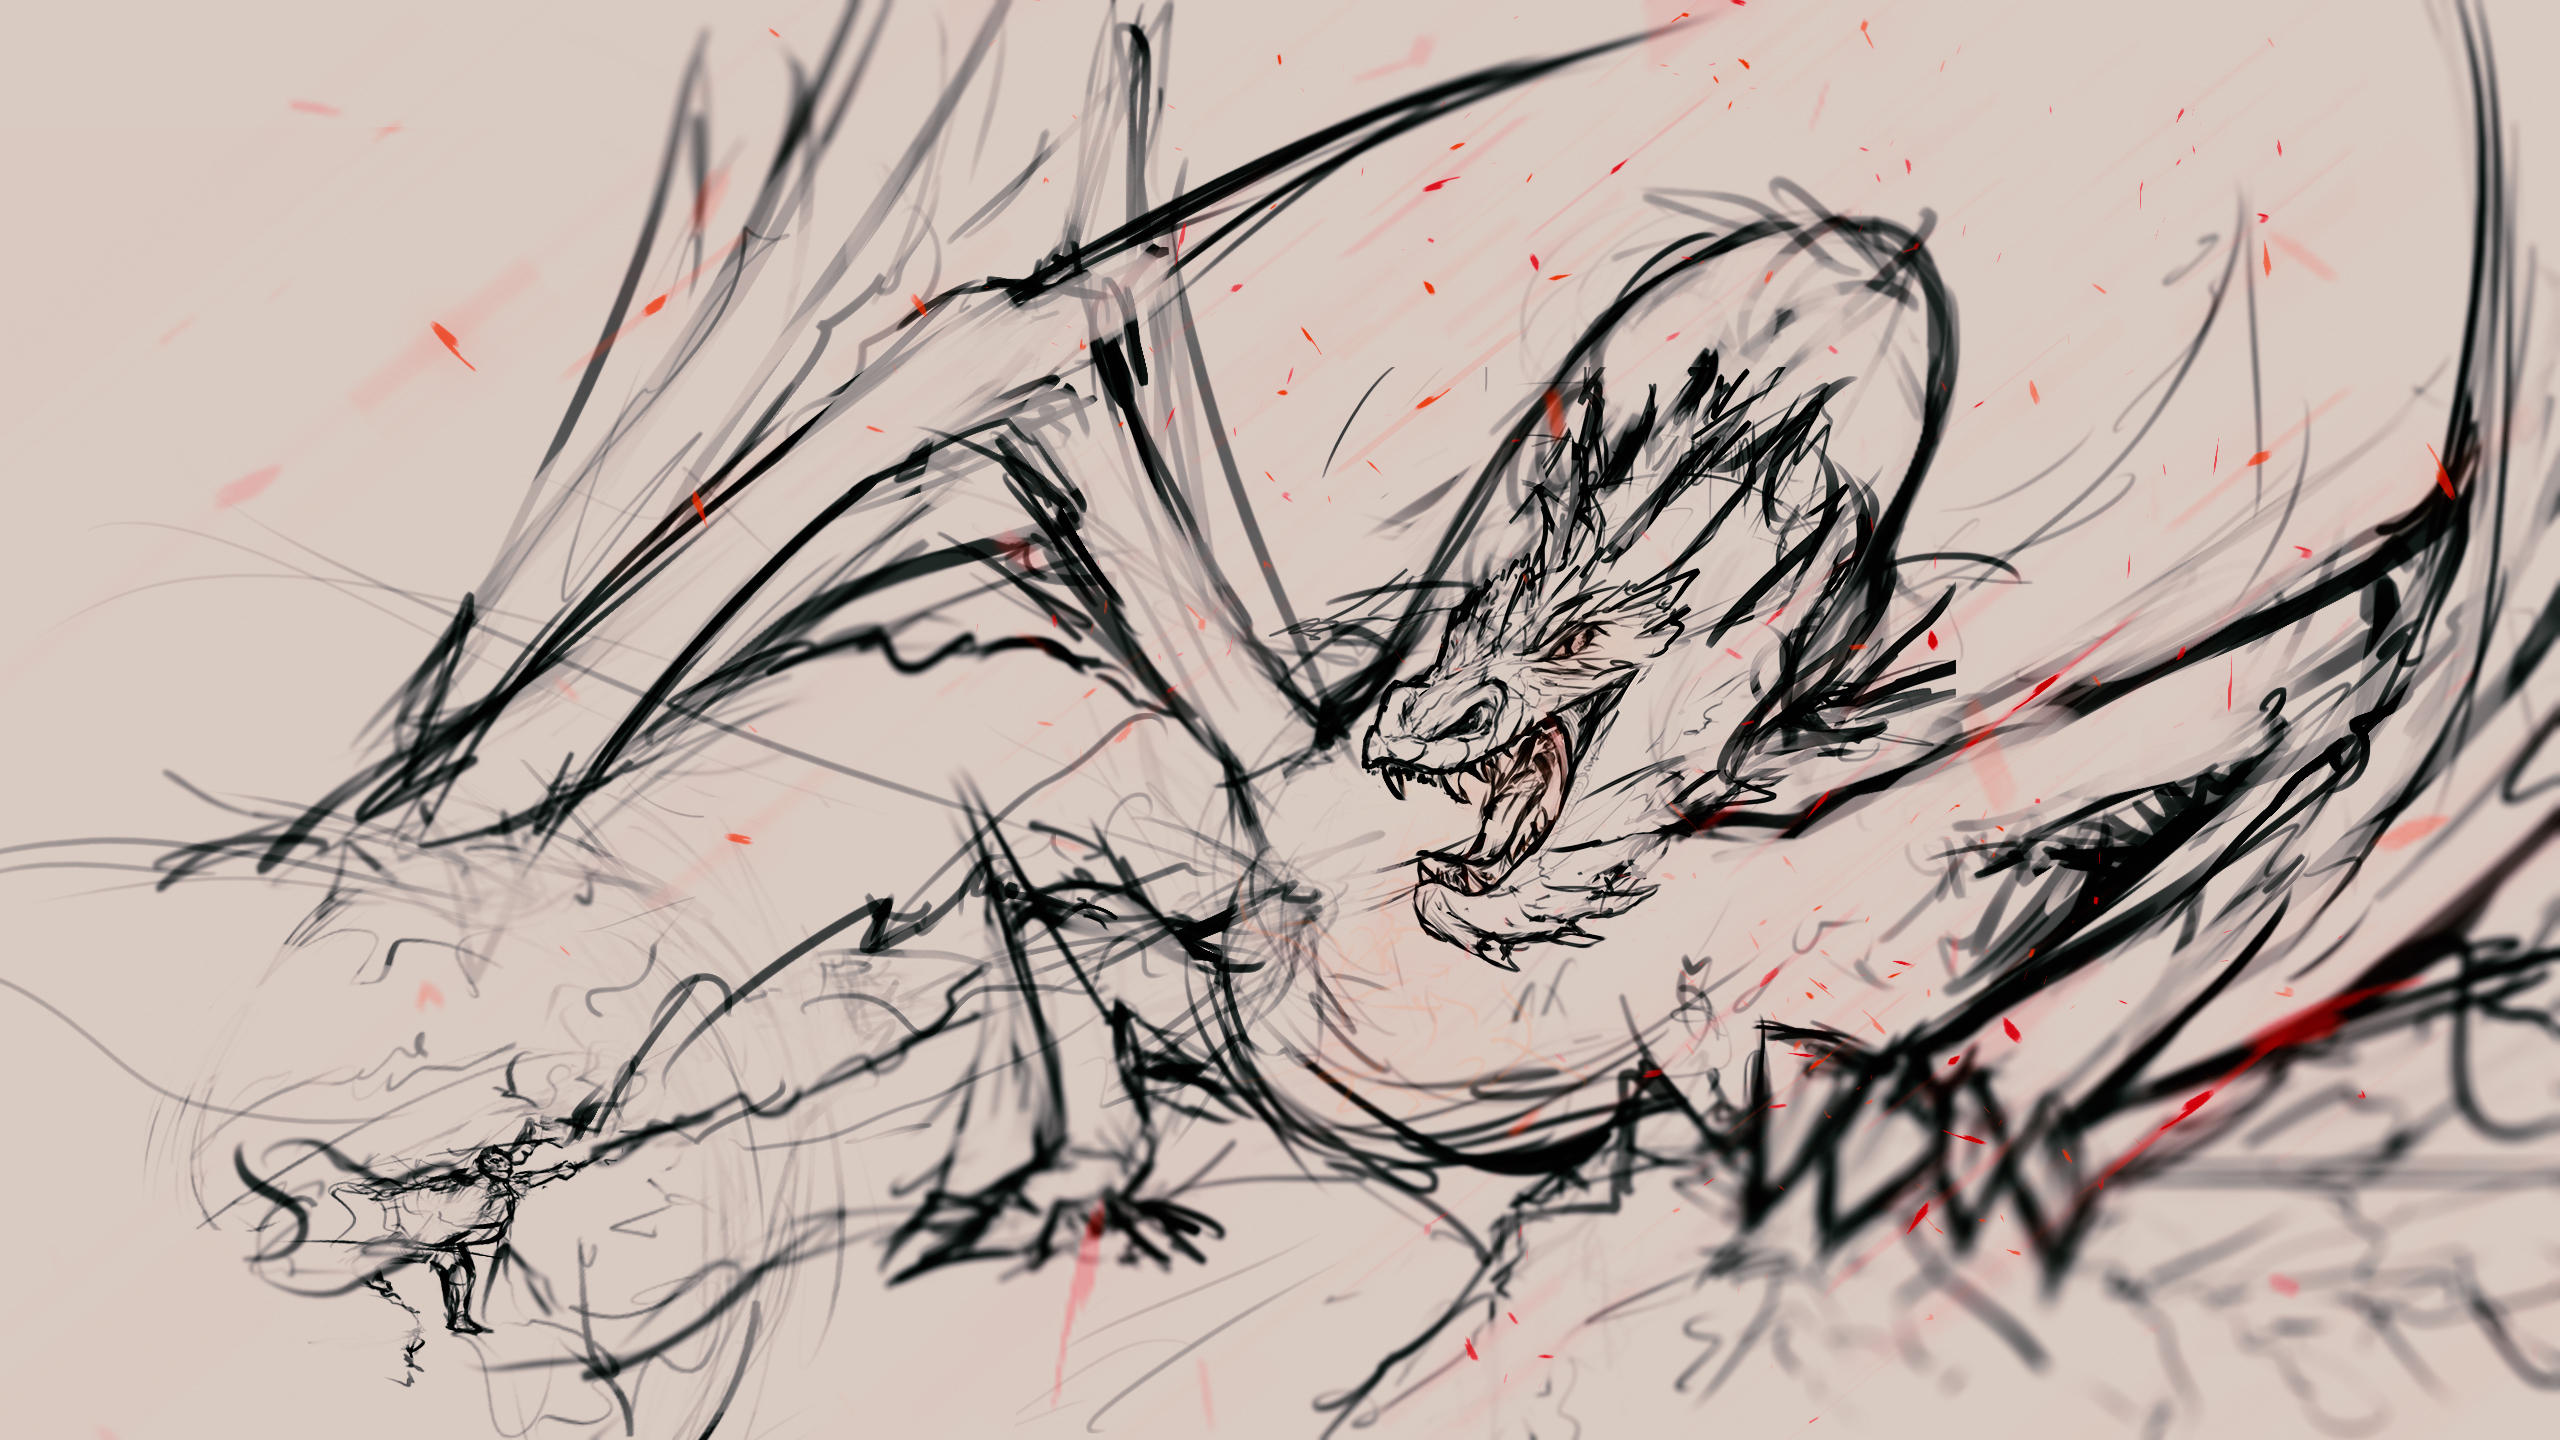 Harry vs Smaug (first sketch)